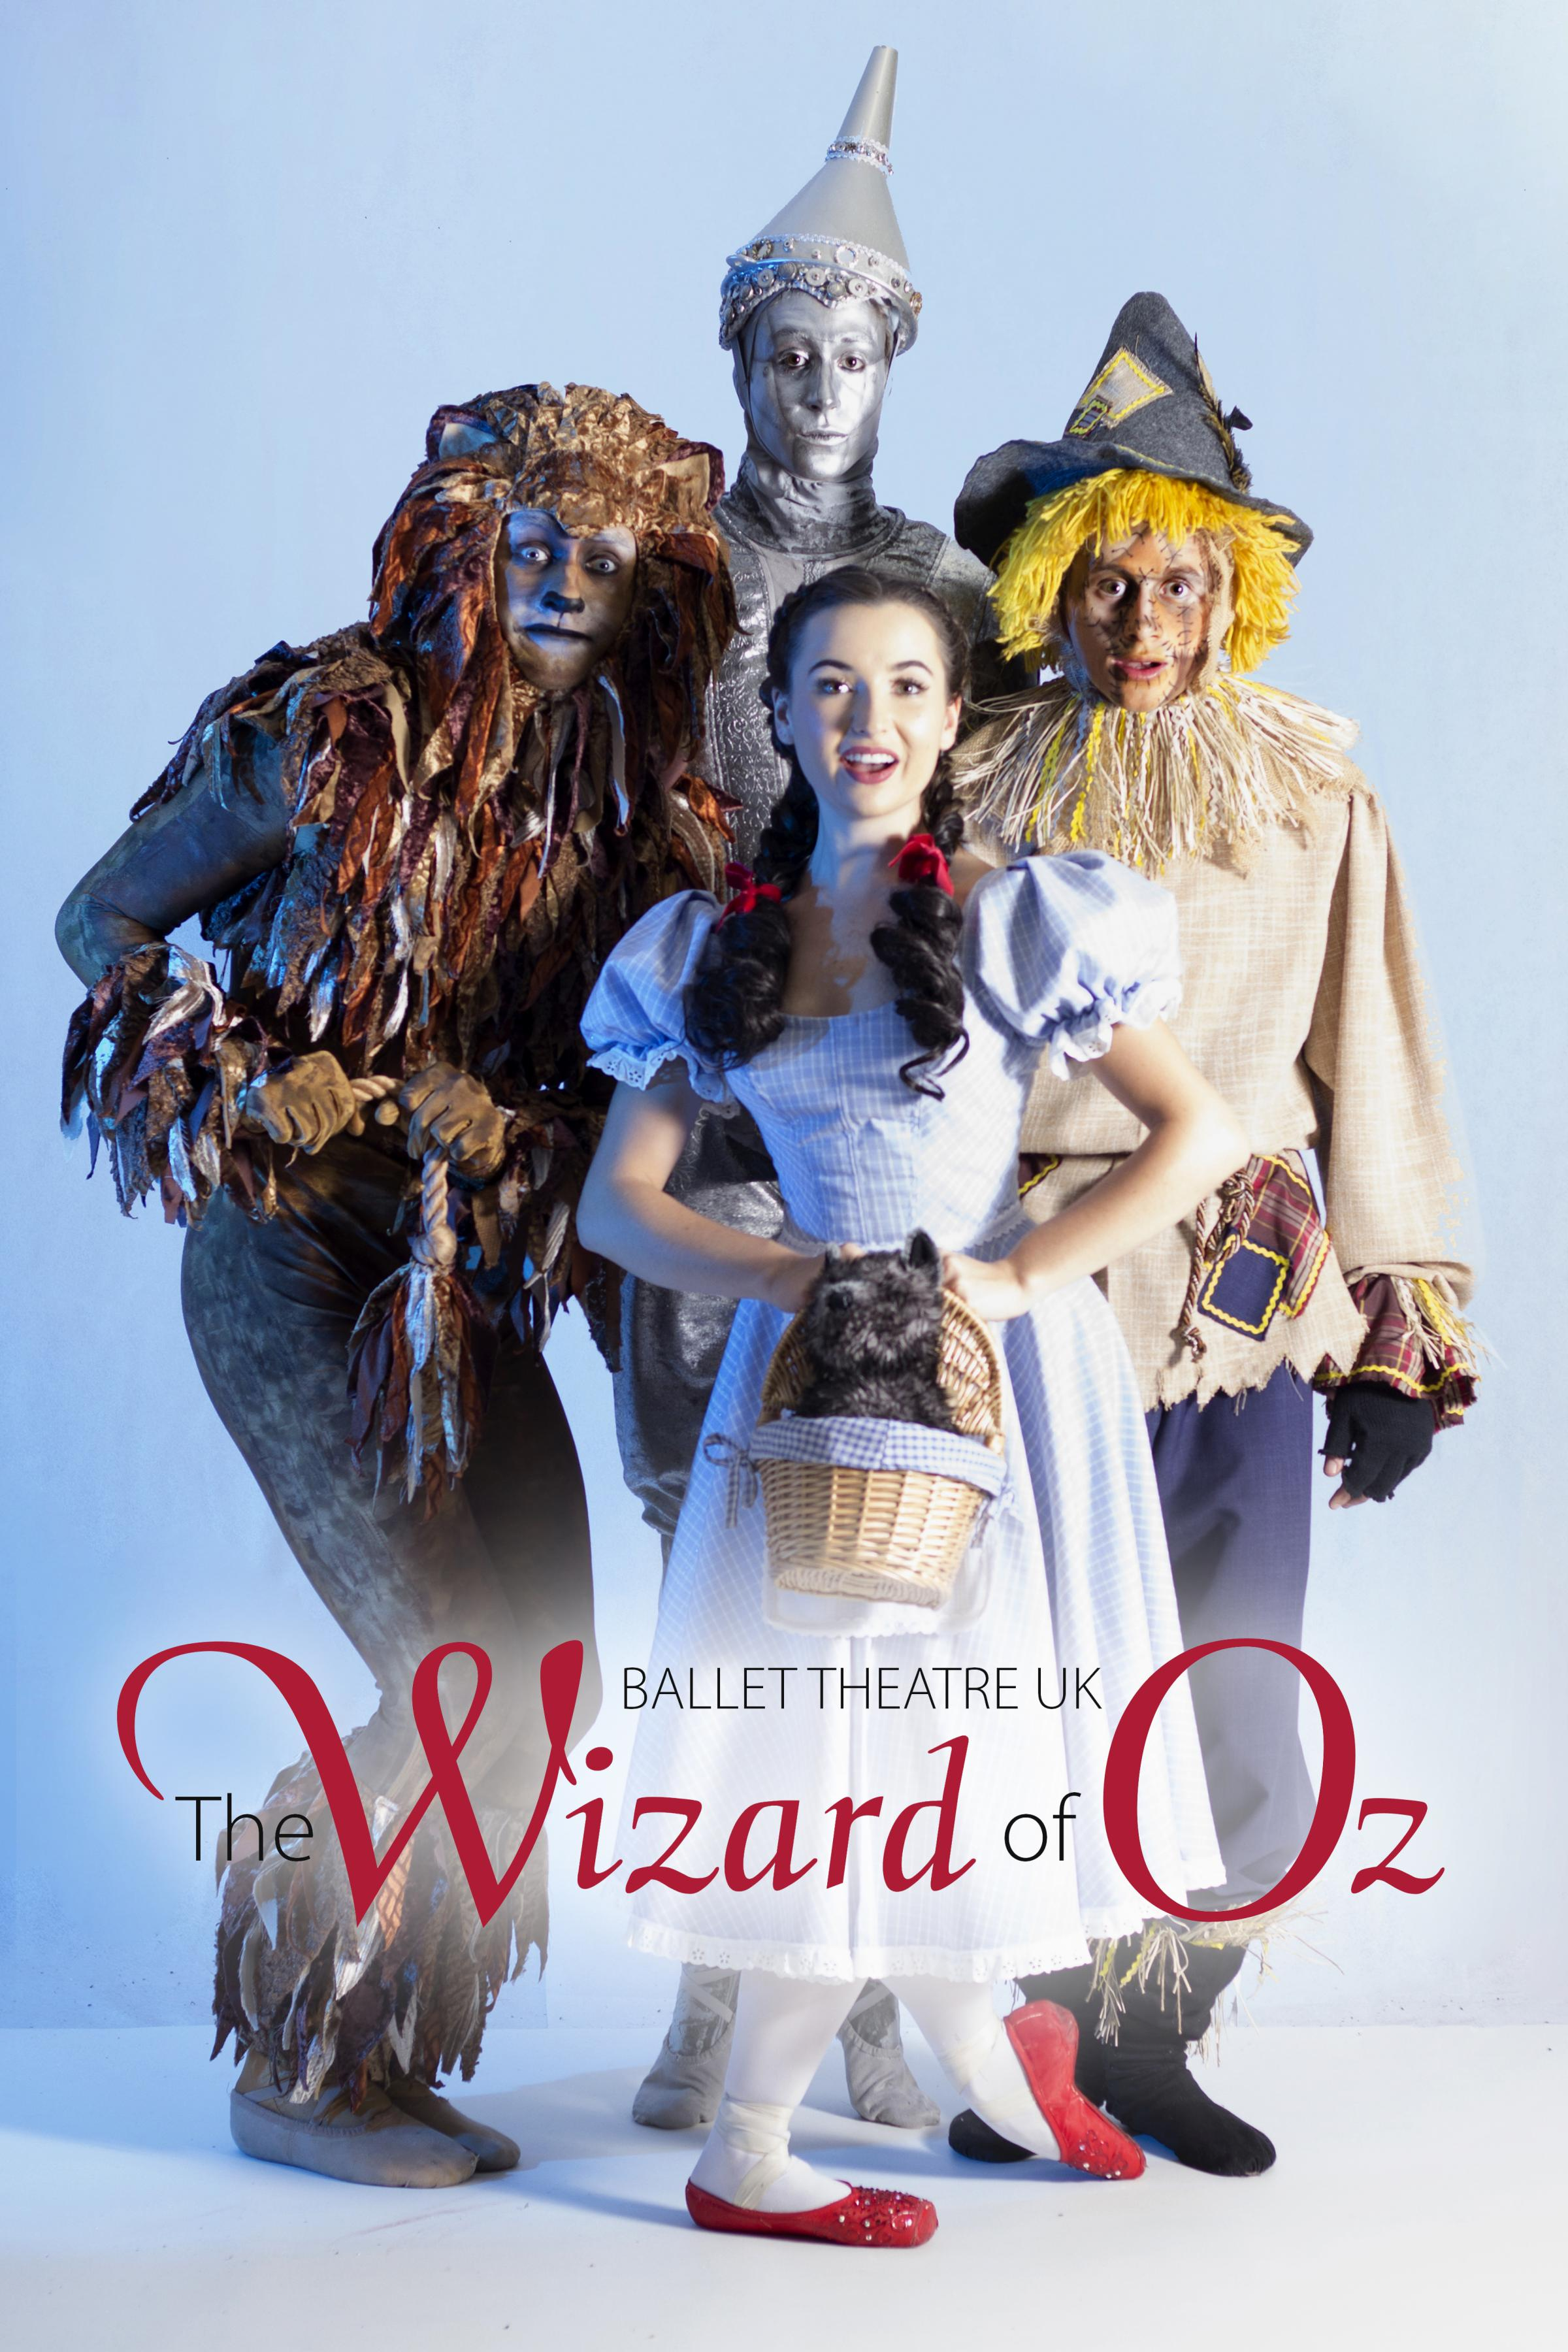 The Wizard of Oz - Ballet Theatre UK